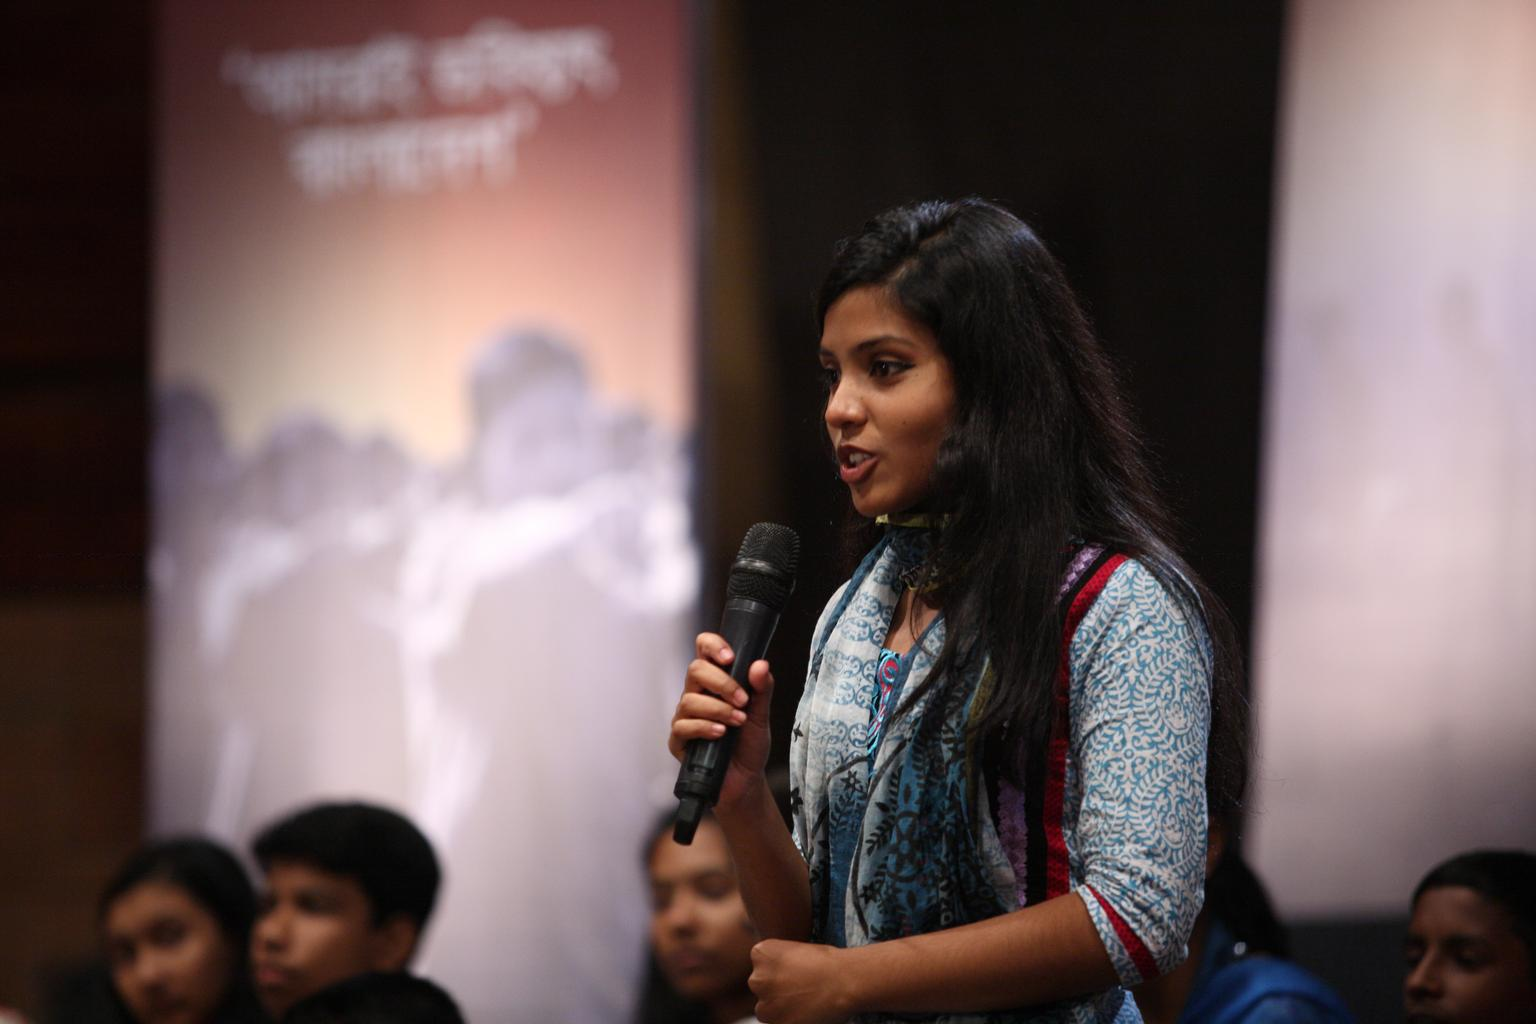 Sanjana, a child participant, asks questions during the Children's Dialogue (Projonmo Sanglap) in Dhaka, Bangladesh, which took place in February.